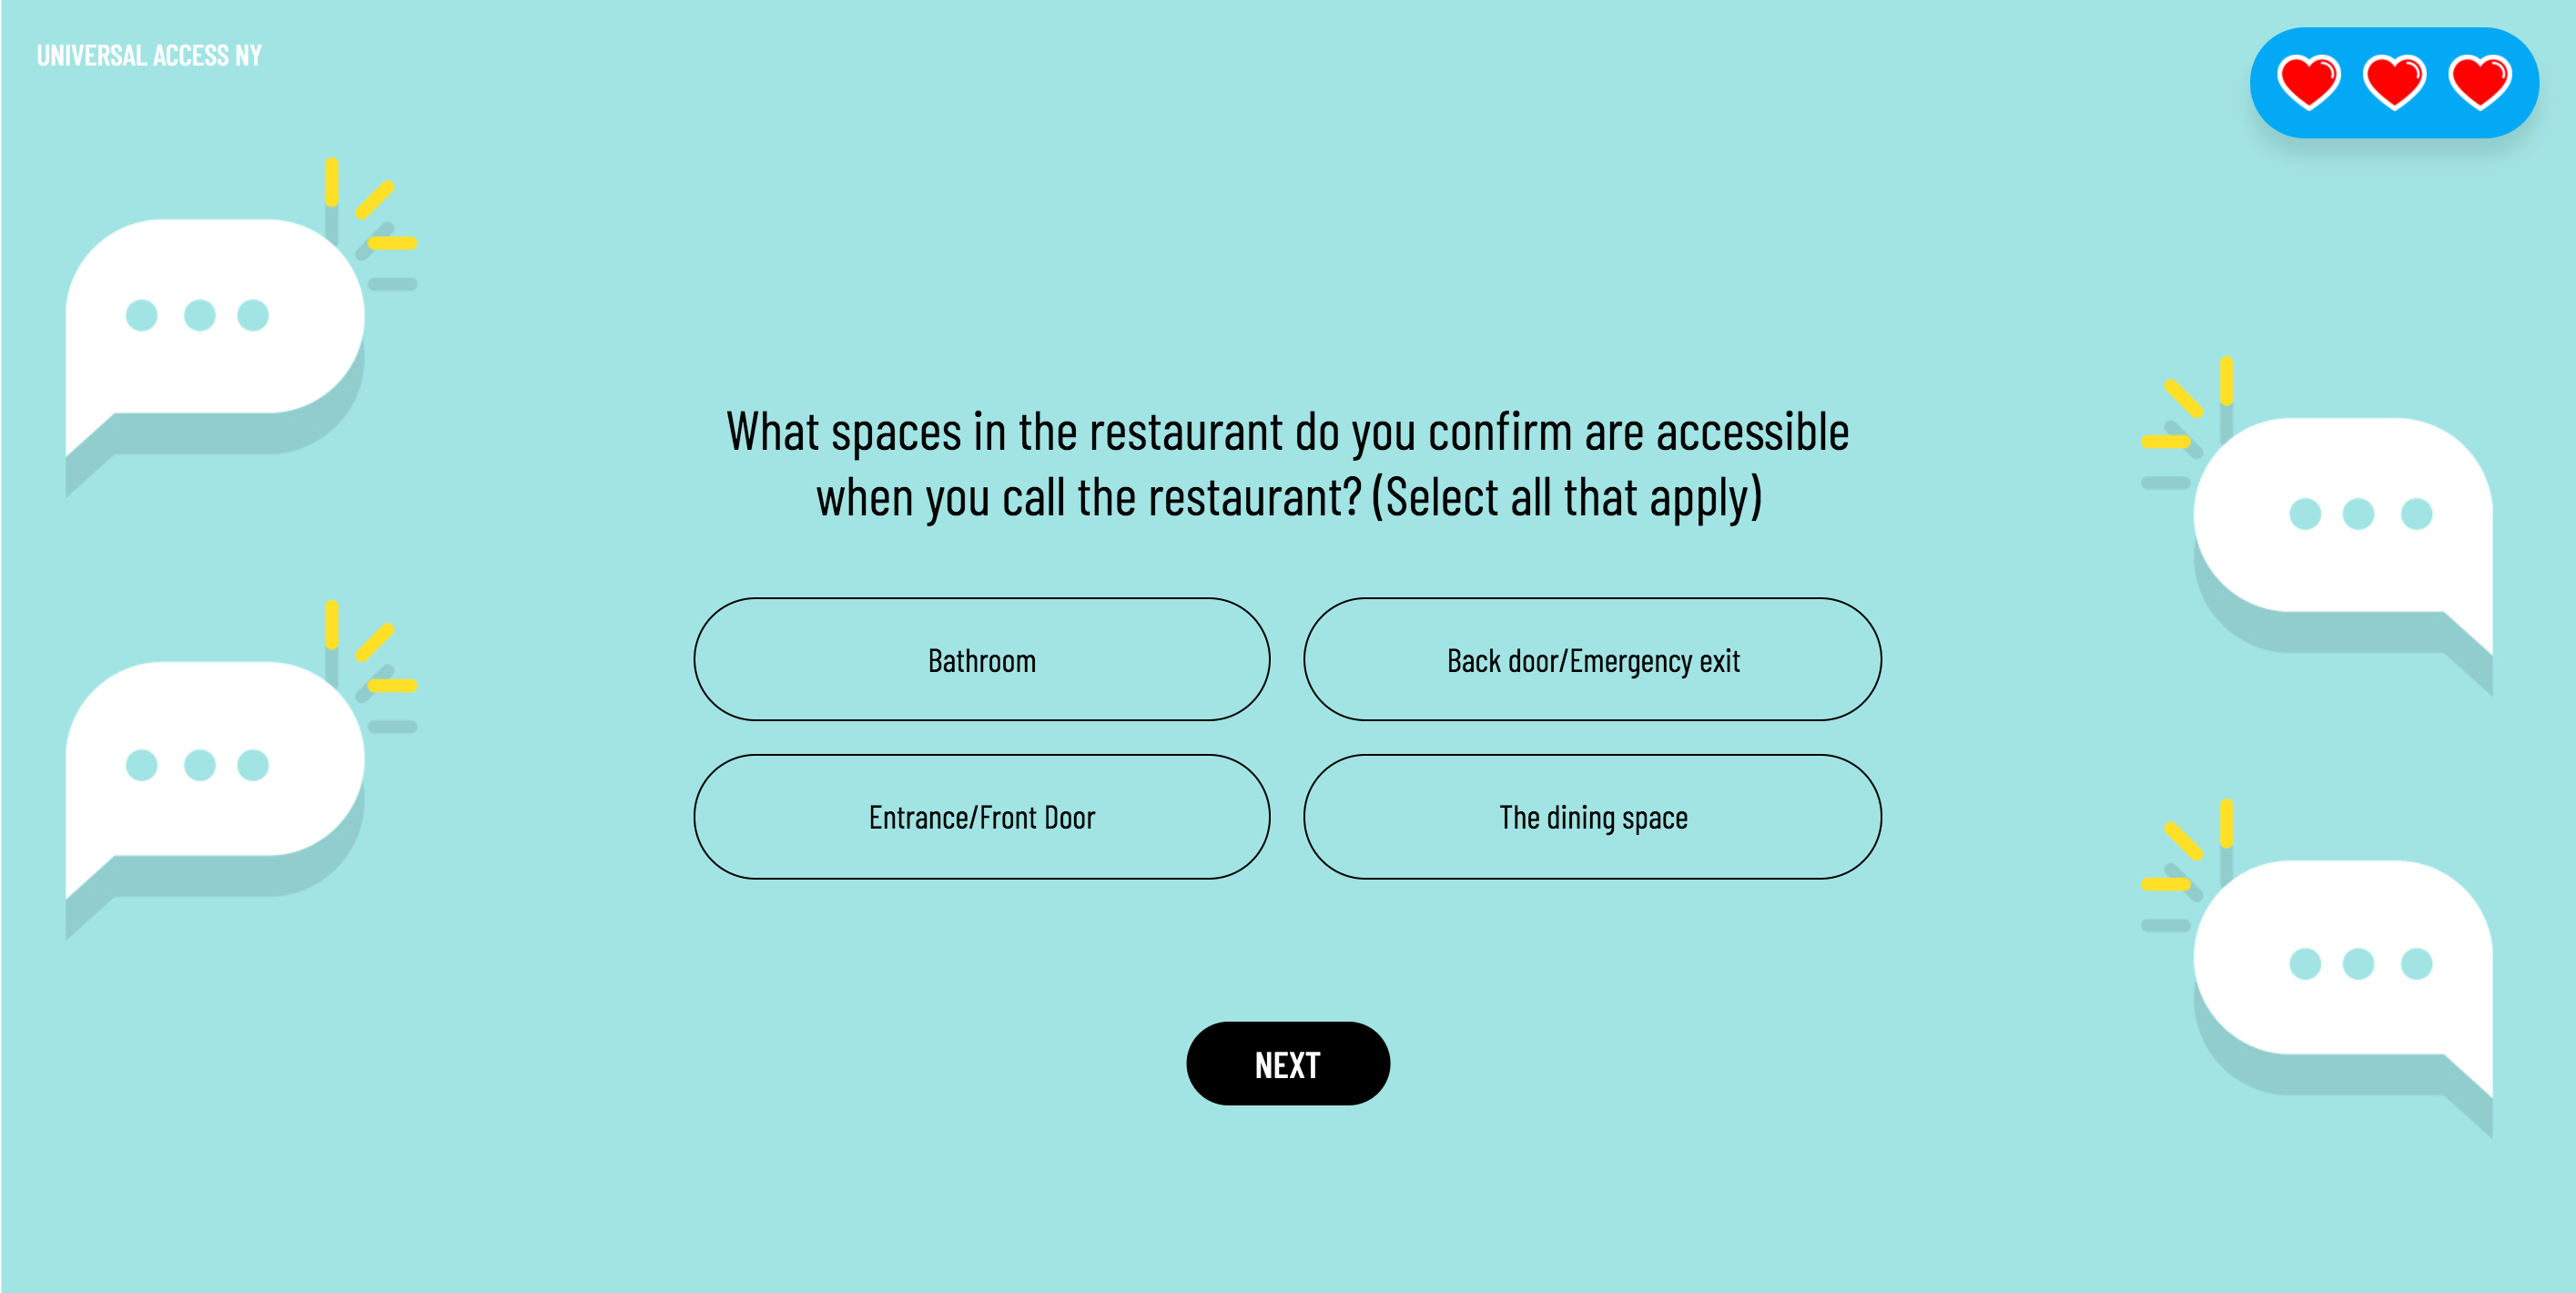 A question of the narrative game. The background is a illustrated graphic with speech bubbles on each side of the question.